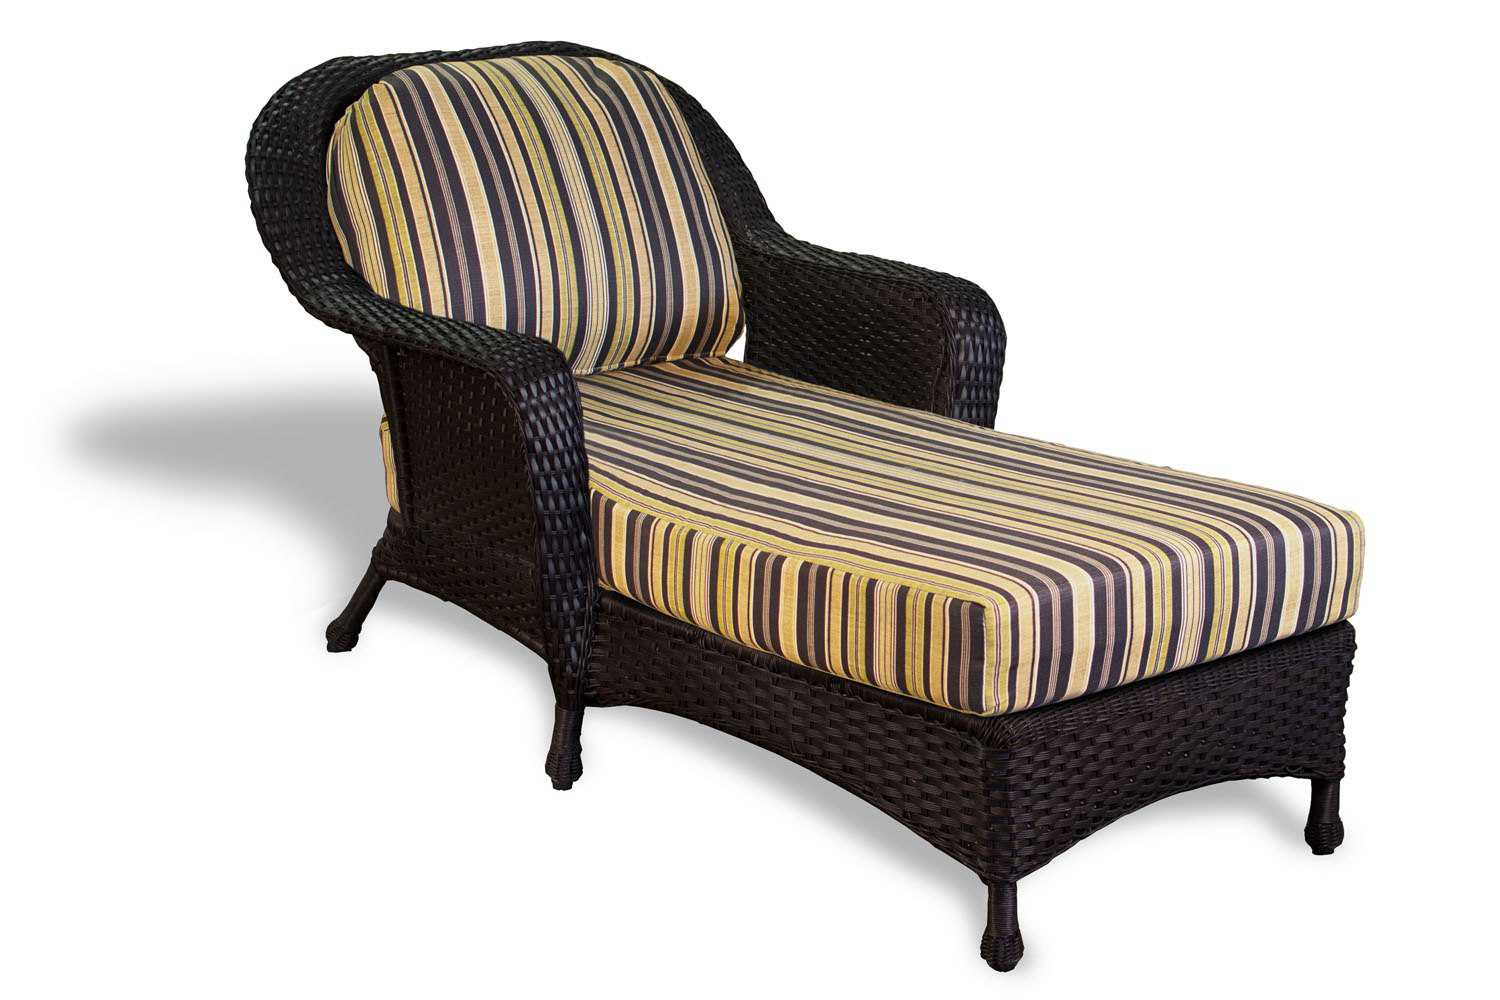 Tortuga Outdoor Sea Pines Wicker Cushion Chaise Lounge ...